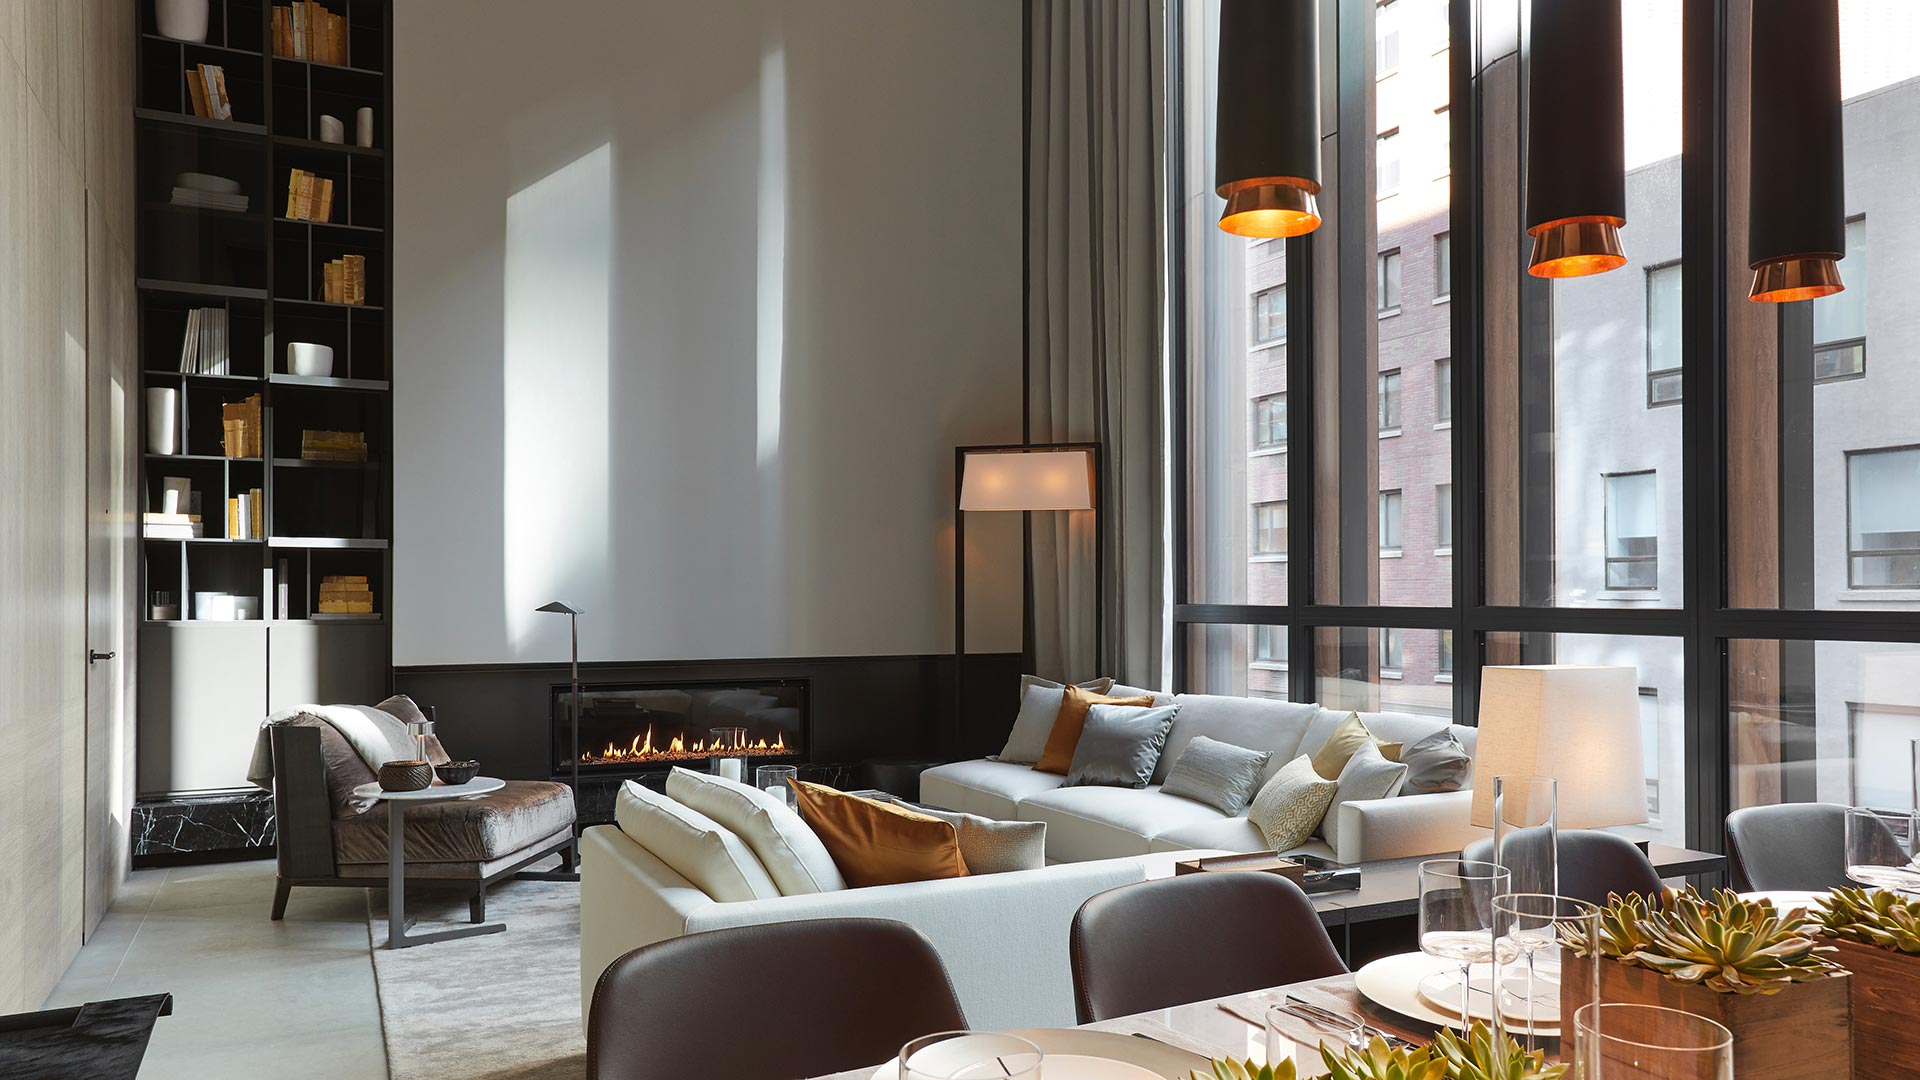 Soori High Line - Most bespoke residence in NYC